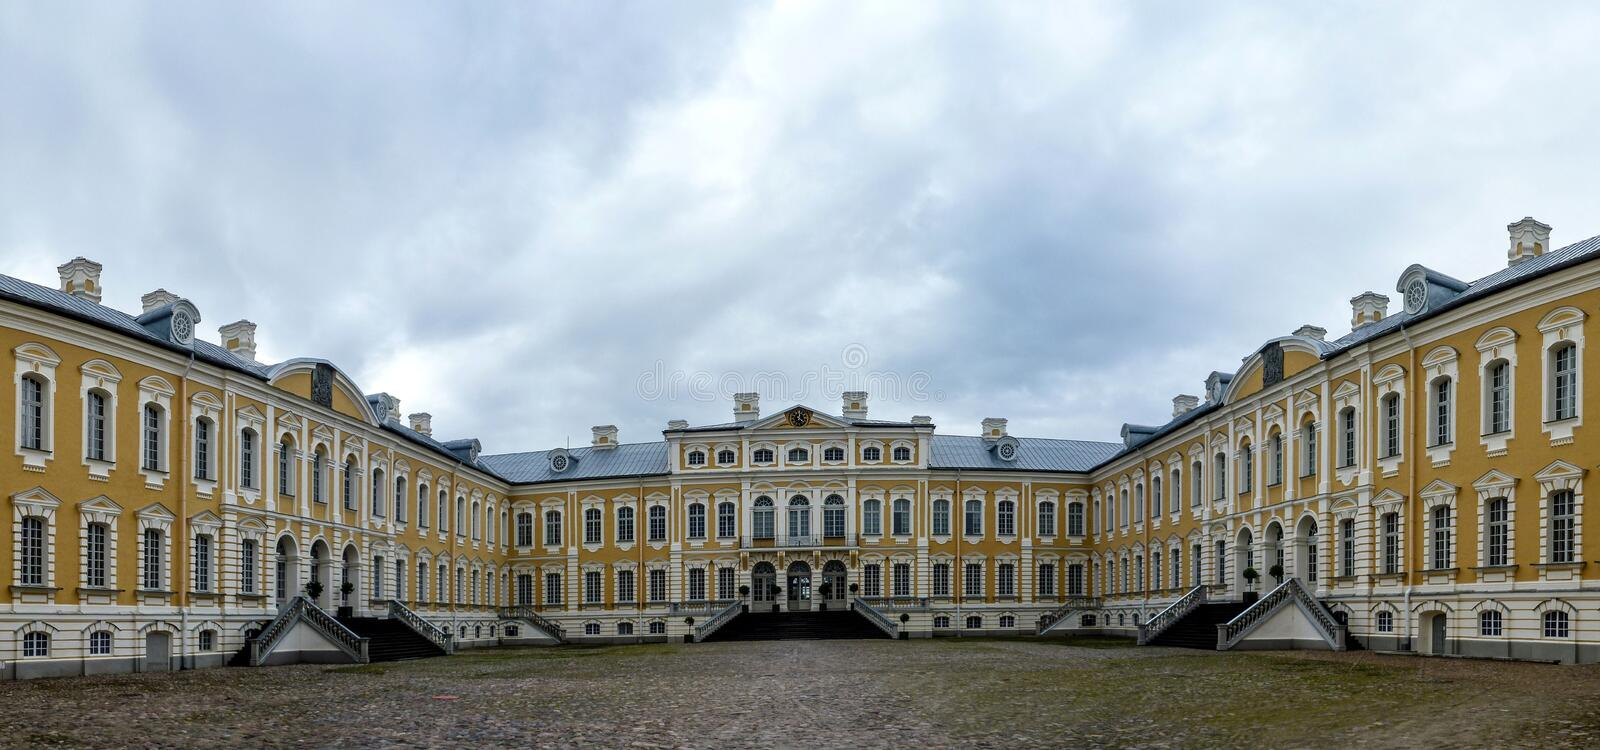 Rundale Latvia Europe.The palace was built in the 1730 to design by Bartolomeo Rastrelli as a summer residence for Biron the Duke. Rundale Palace is the most stock photography